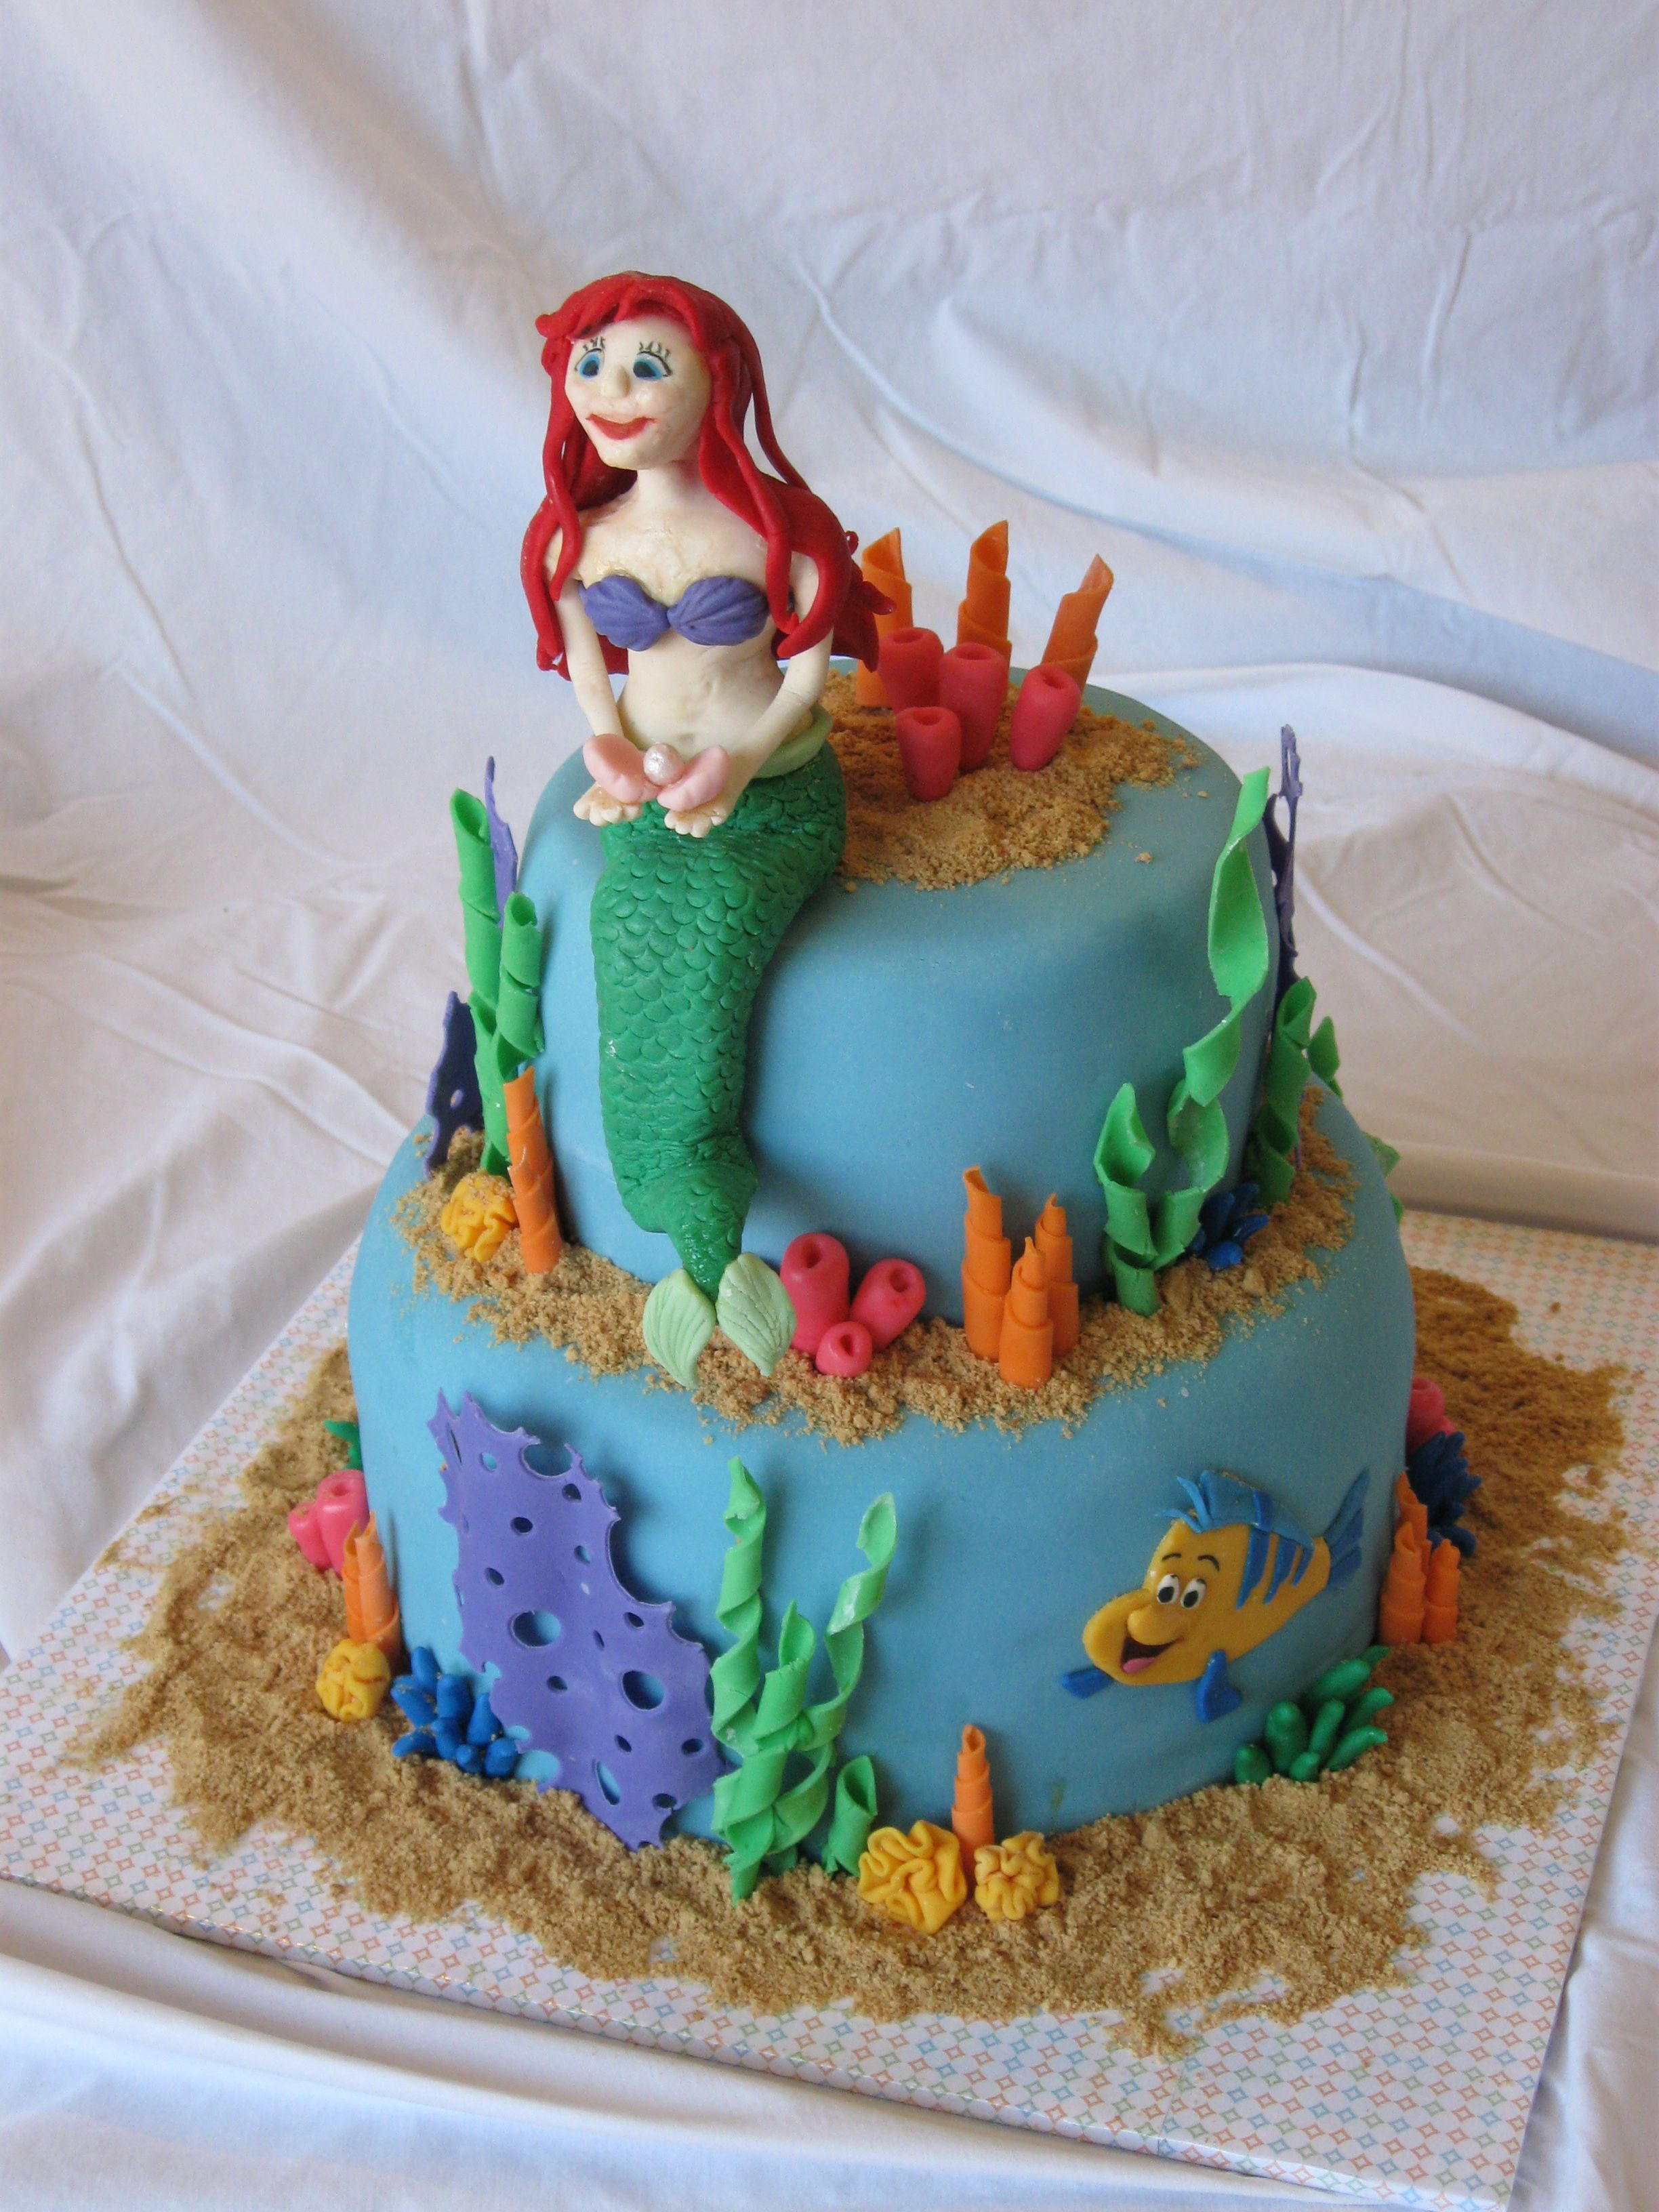 Little Mermaid Cake This was for my daughter's 7th birthday. She has been obsessed with the Little Mermaid since she was 3. Ariel didn't turn out...